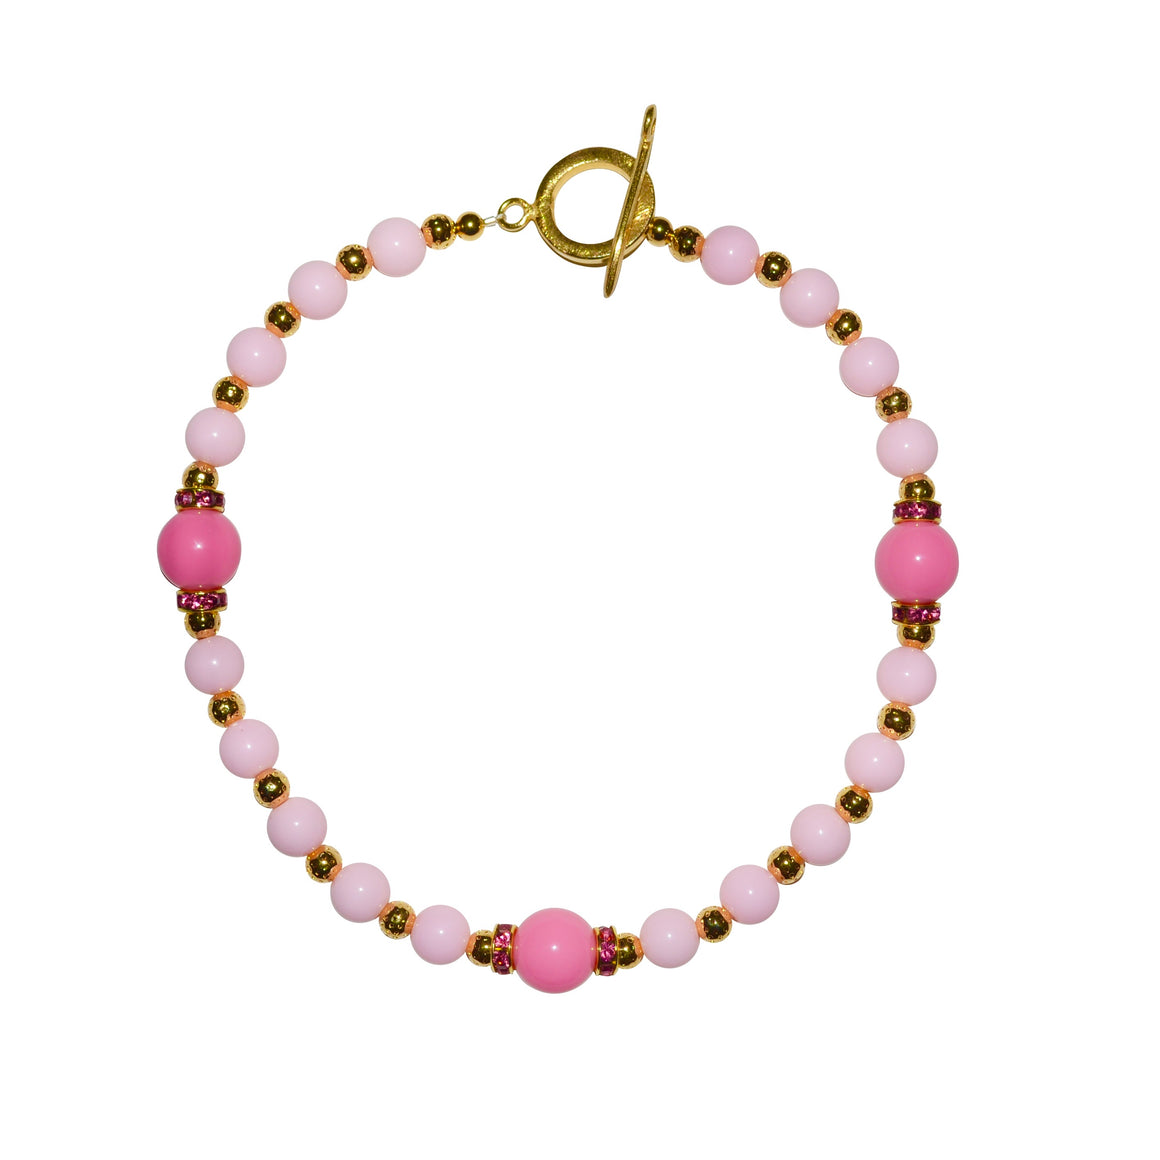 TATE HUDSON NECKLACE IN PINK